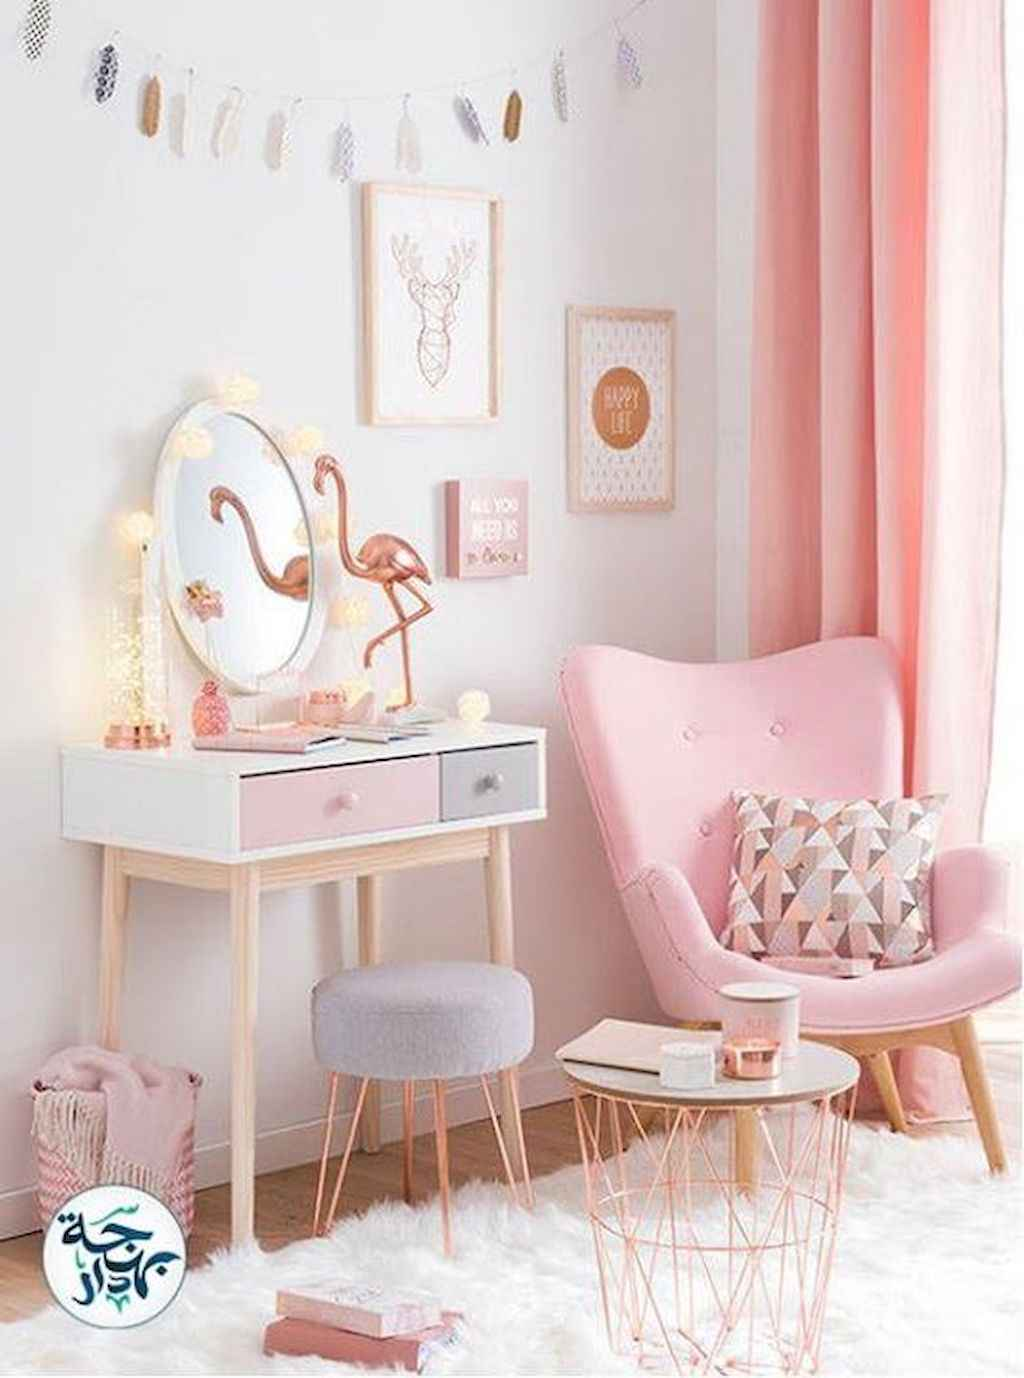 Awesome ideas bedroom for kids (11)